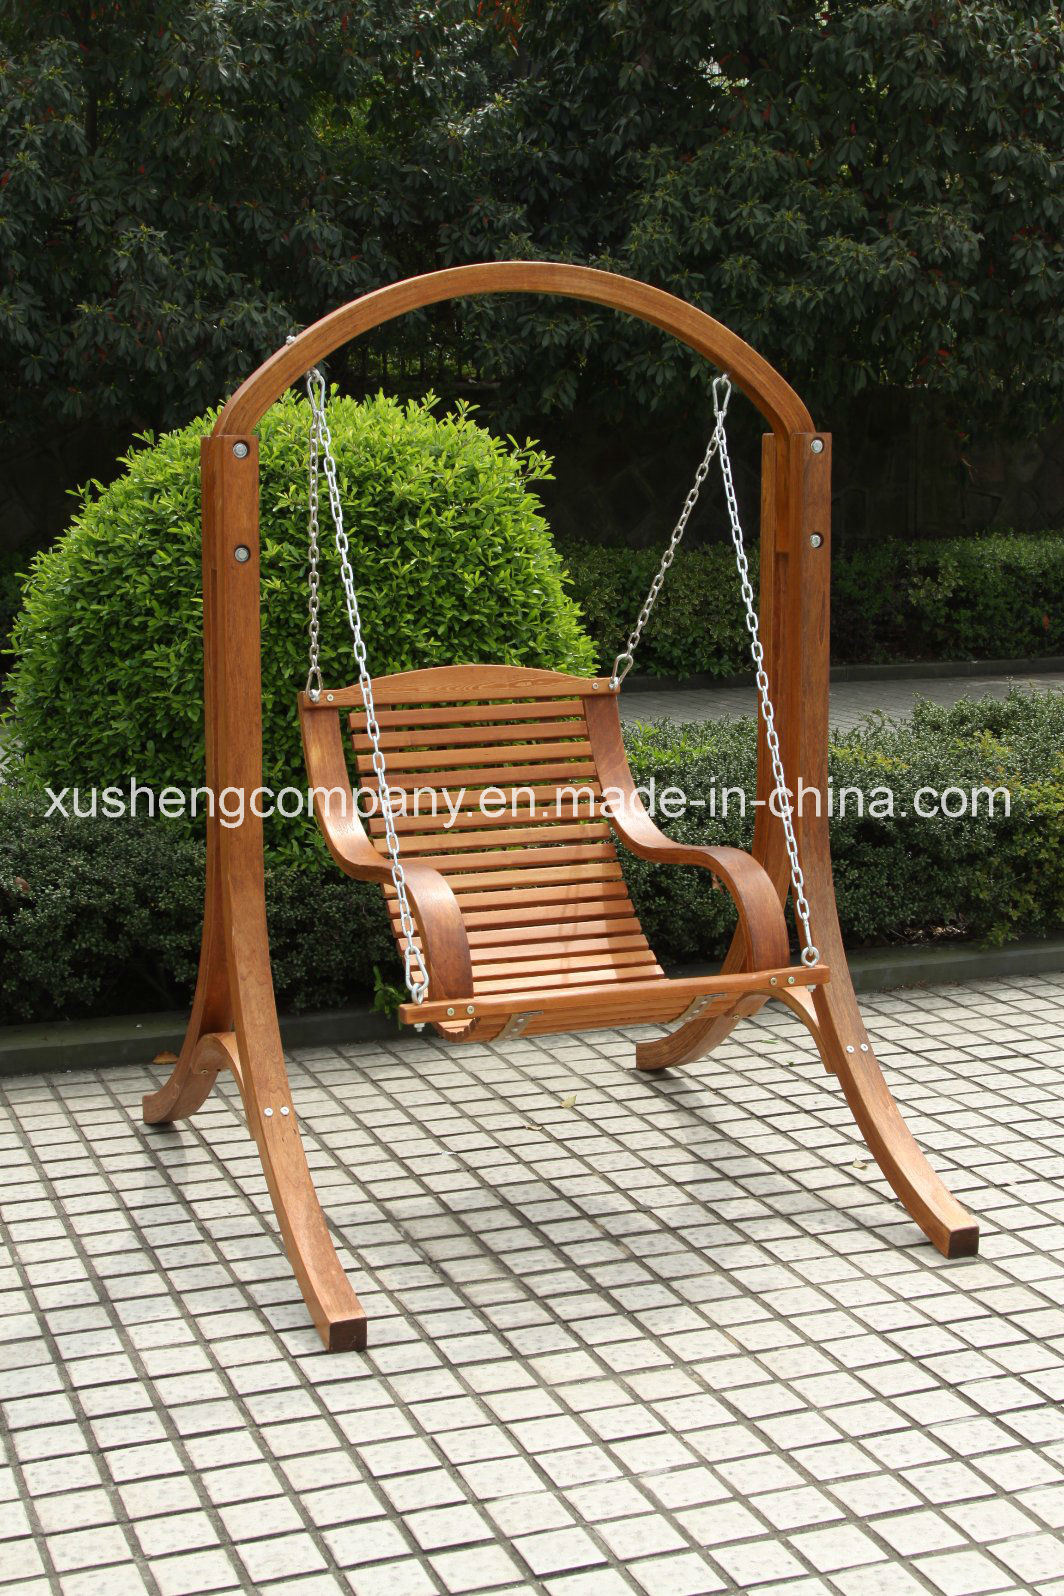 China Outdoor Hanging Steel Link Chain Rope Swing Chair With Wood Material China Garden Swing Chair Hanging Chair